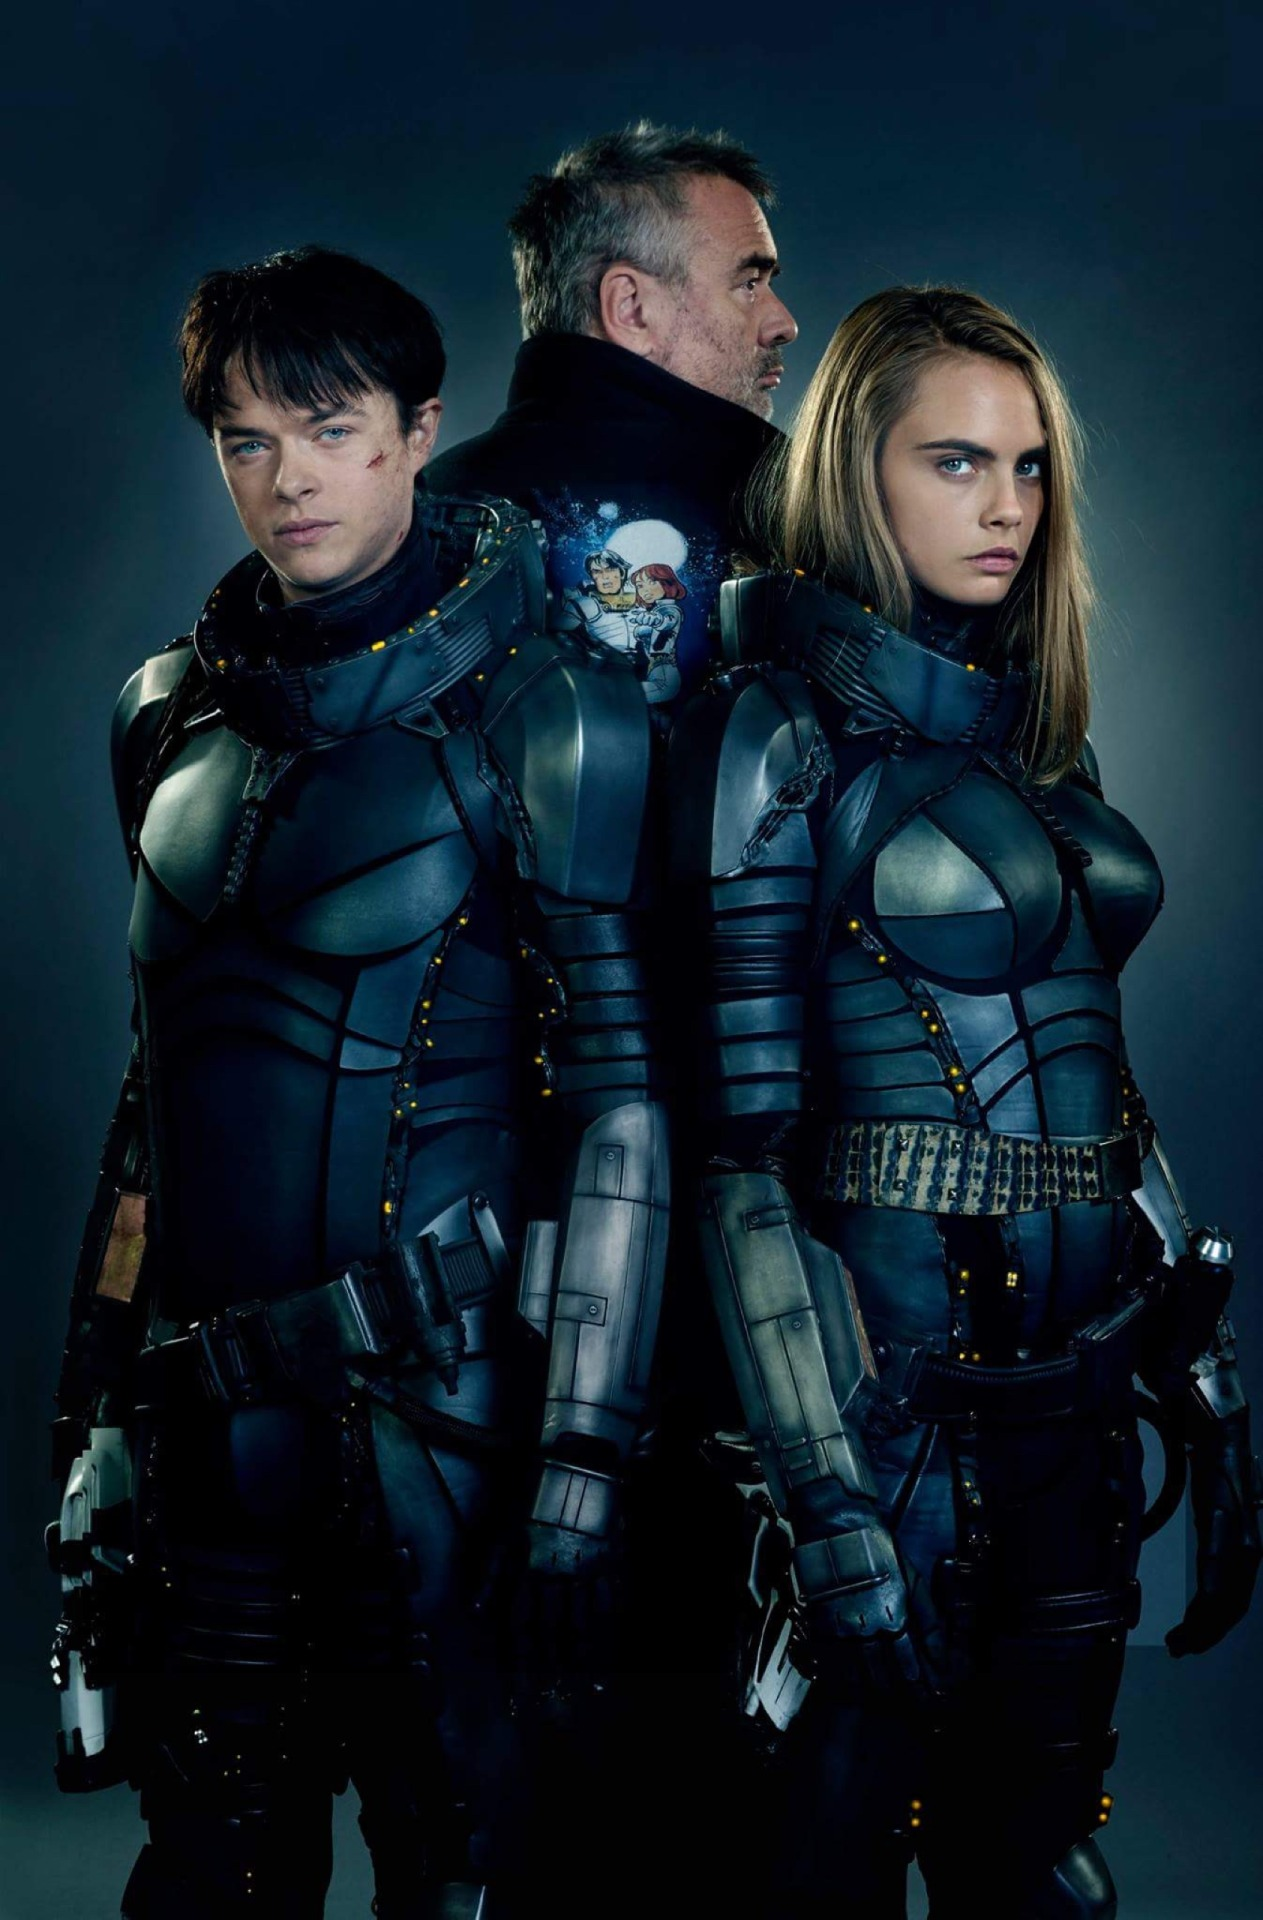 Imagen promocional de 'Valerian and the City of a Thousand Planets '